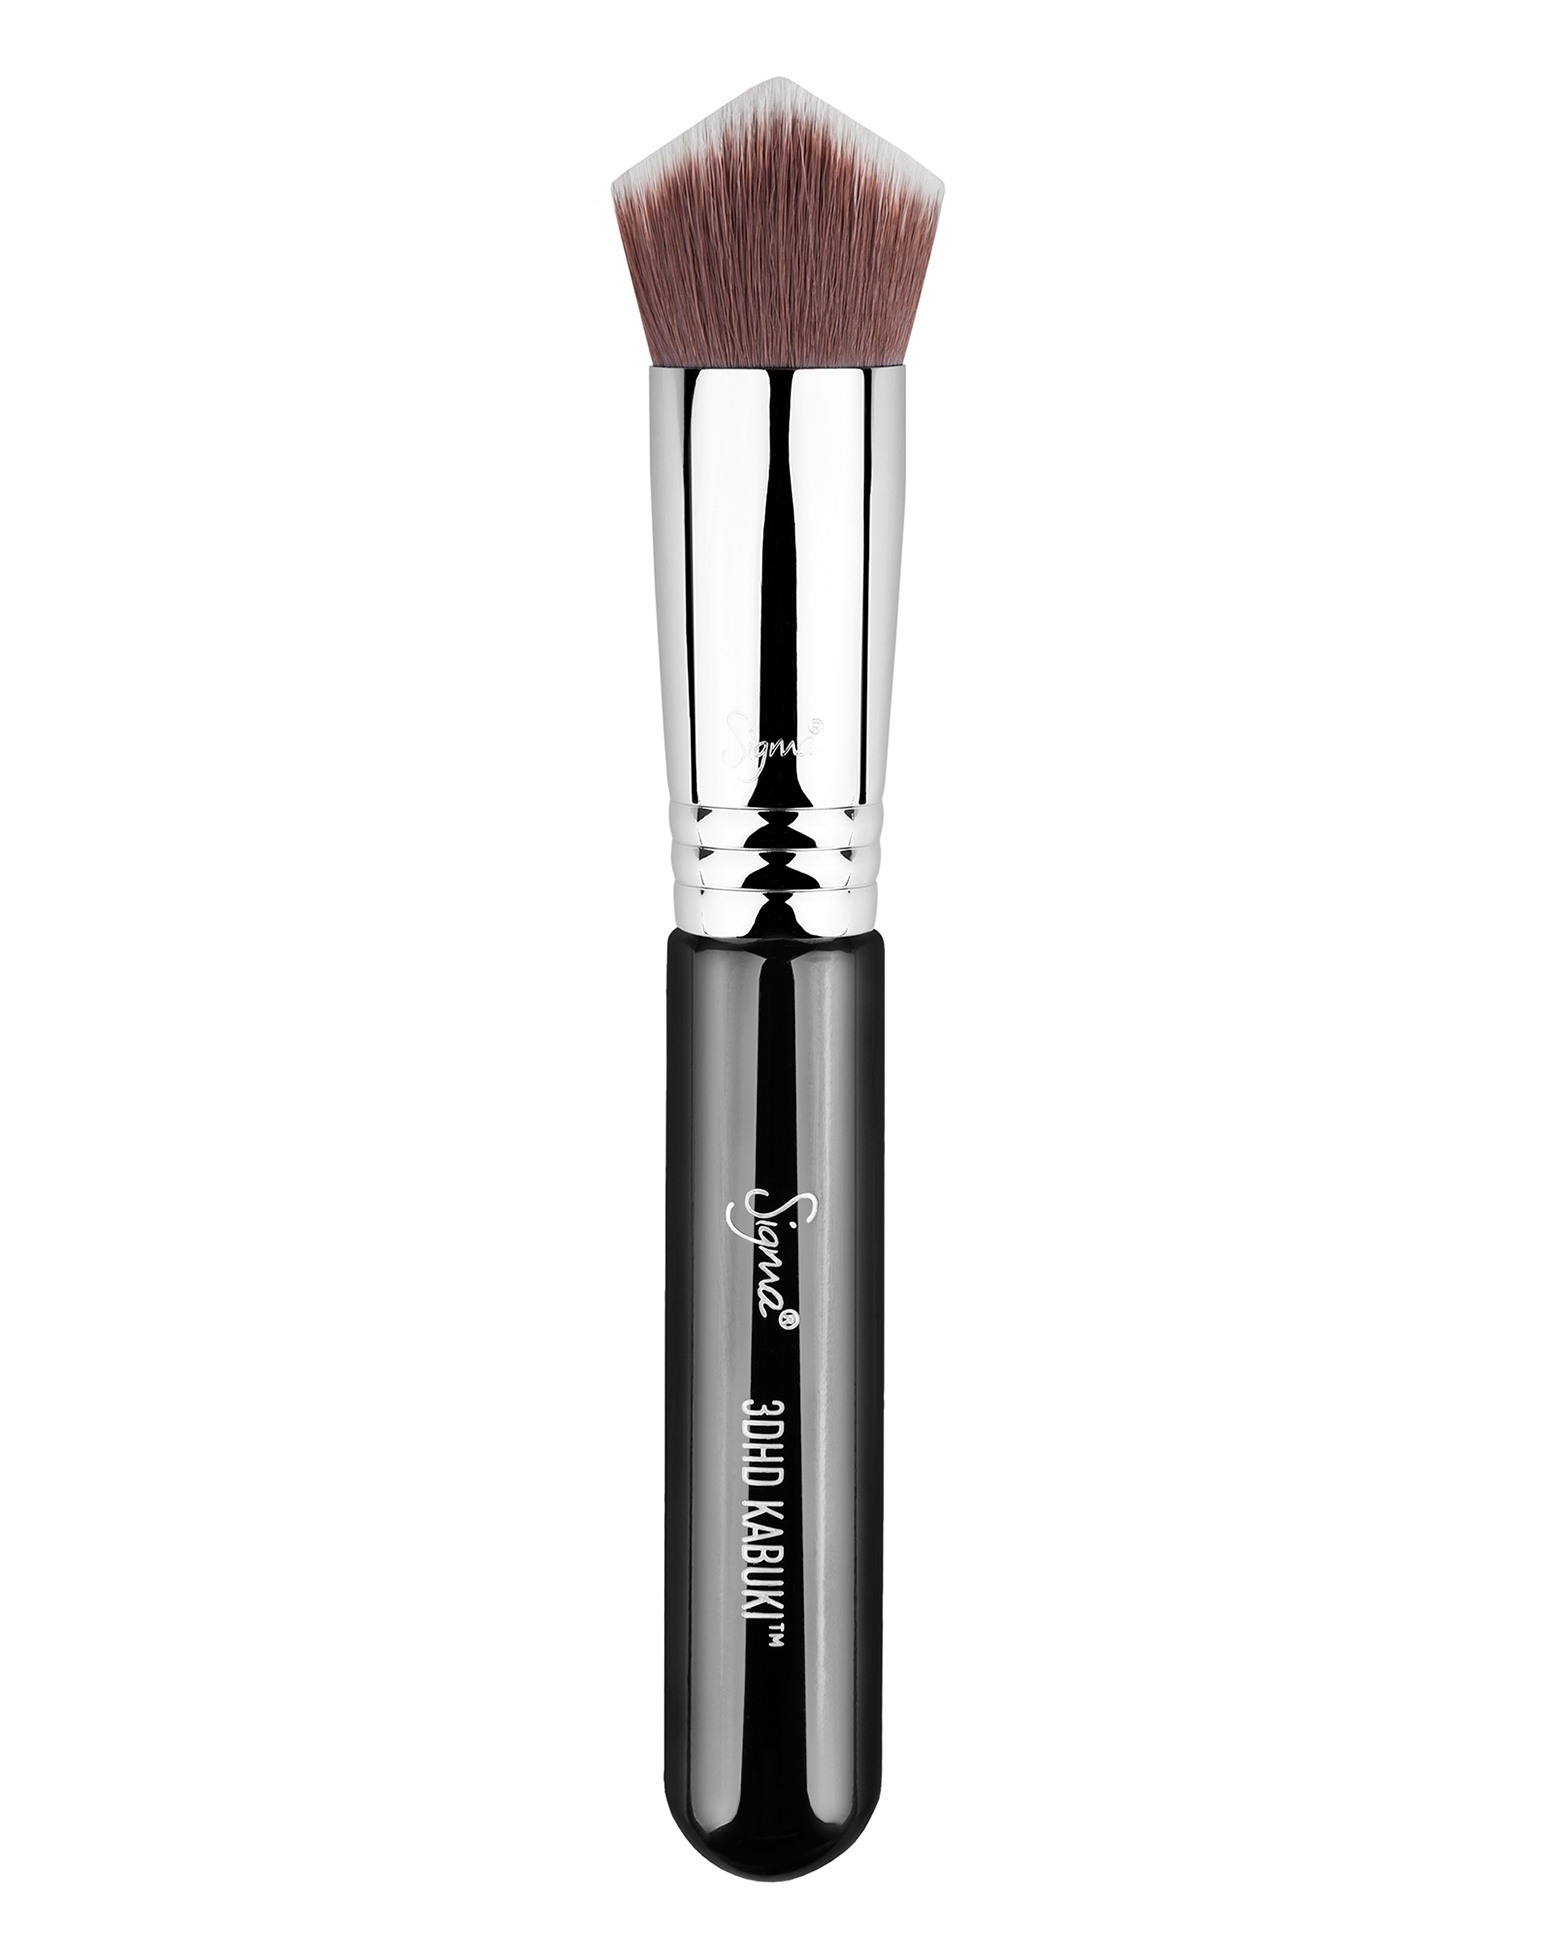 Sigma Beauty Best Of Sigma Beauty Brush Kit 122 Value: 3DHD Kabuki Brush By Sigma Beauty